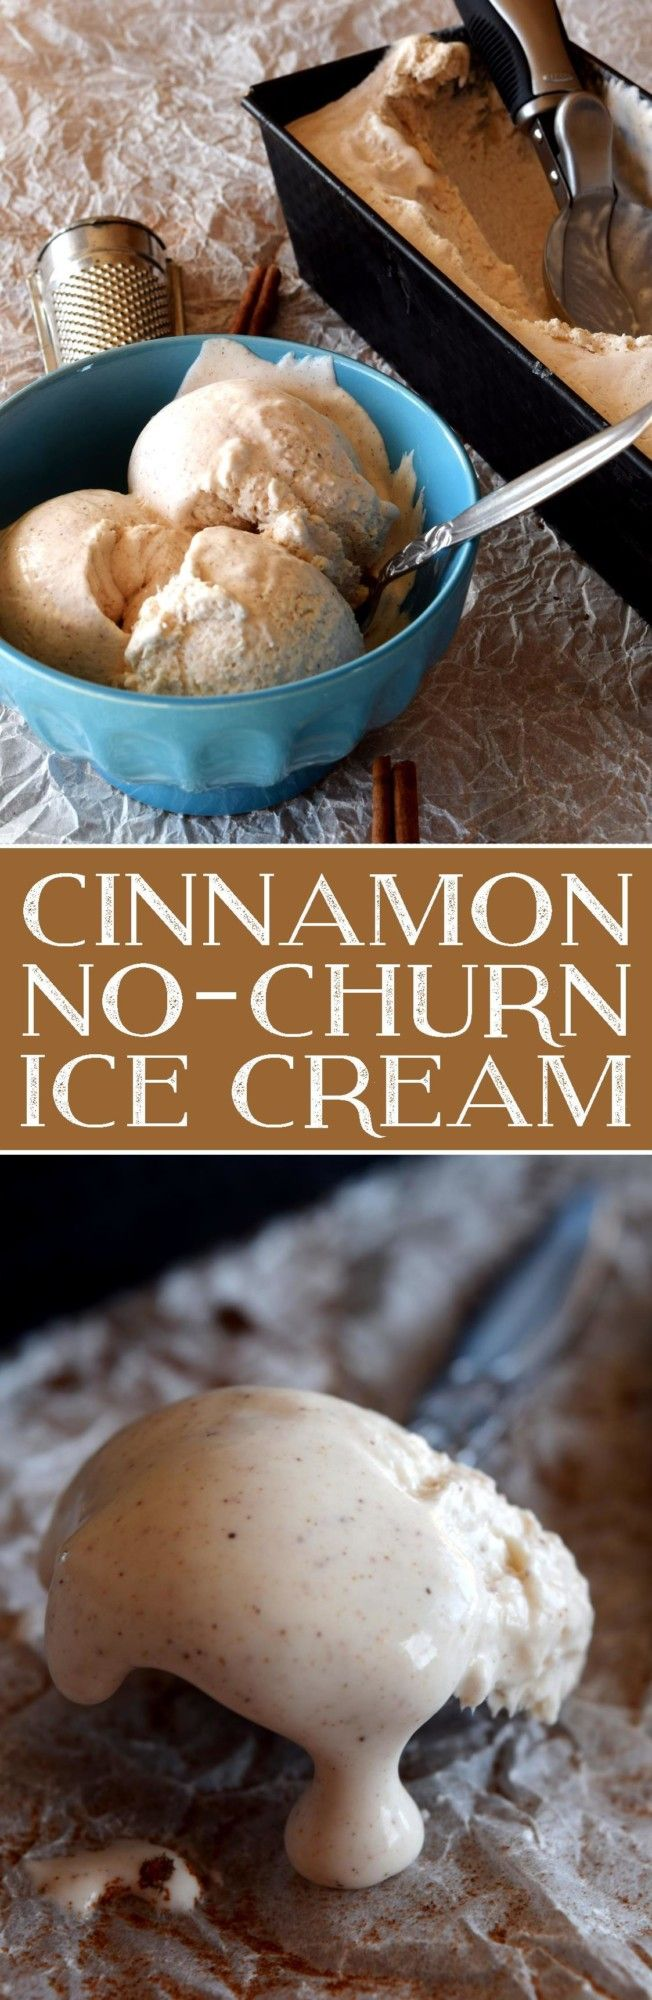 Cinnamon No Churn Ice Cream